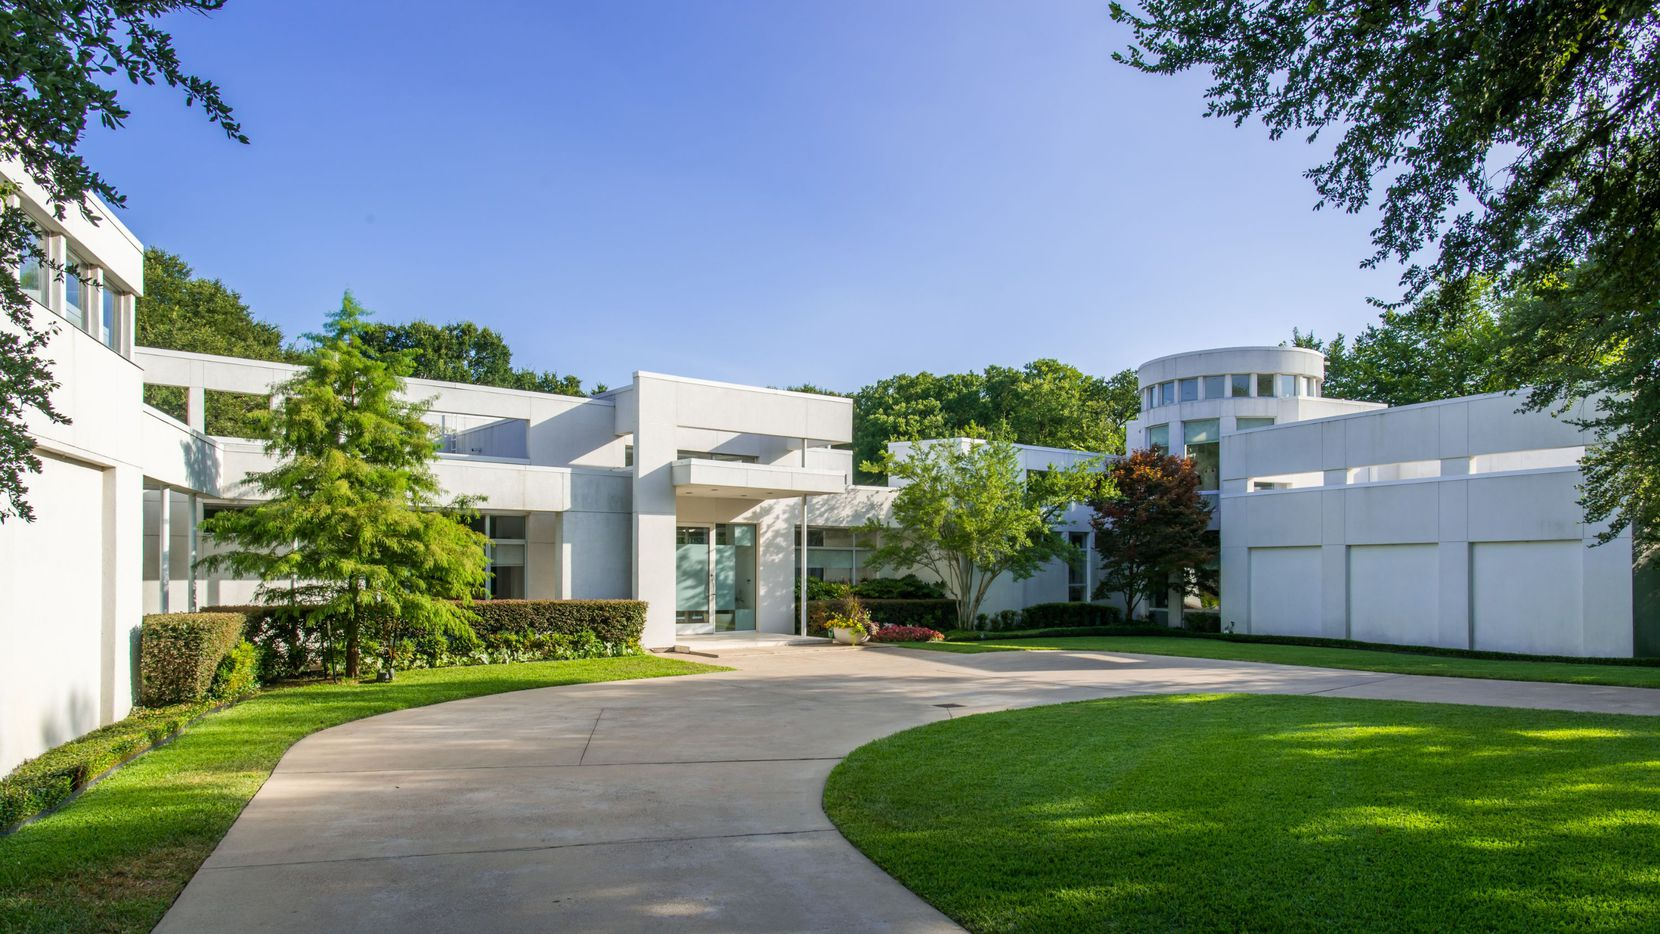 Take a look at the home at 4130 Cochran Chapel Road in Dallas.